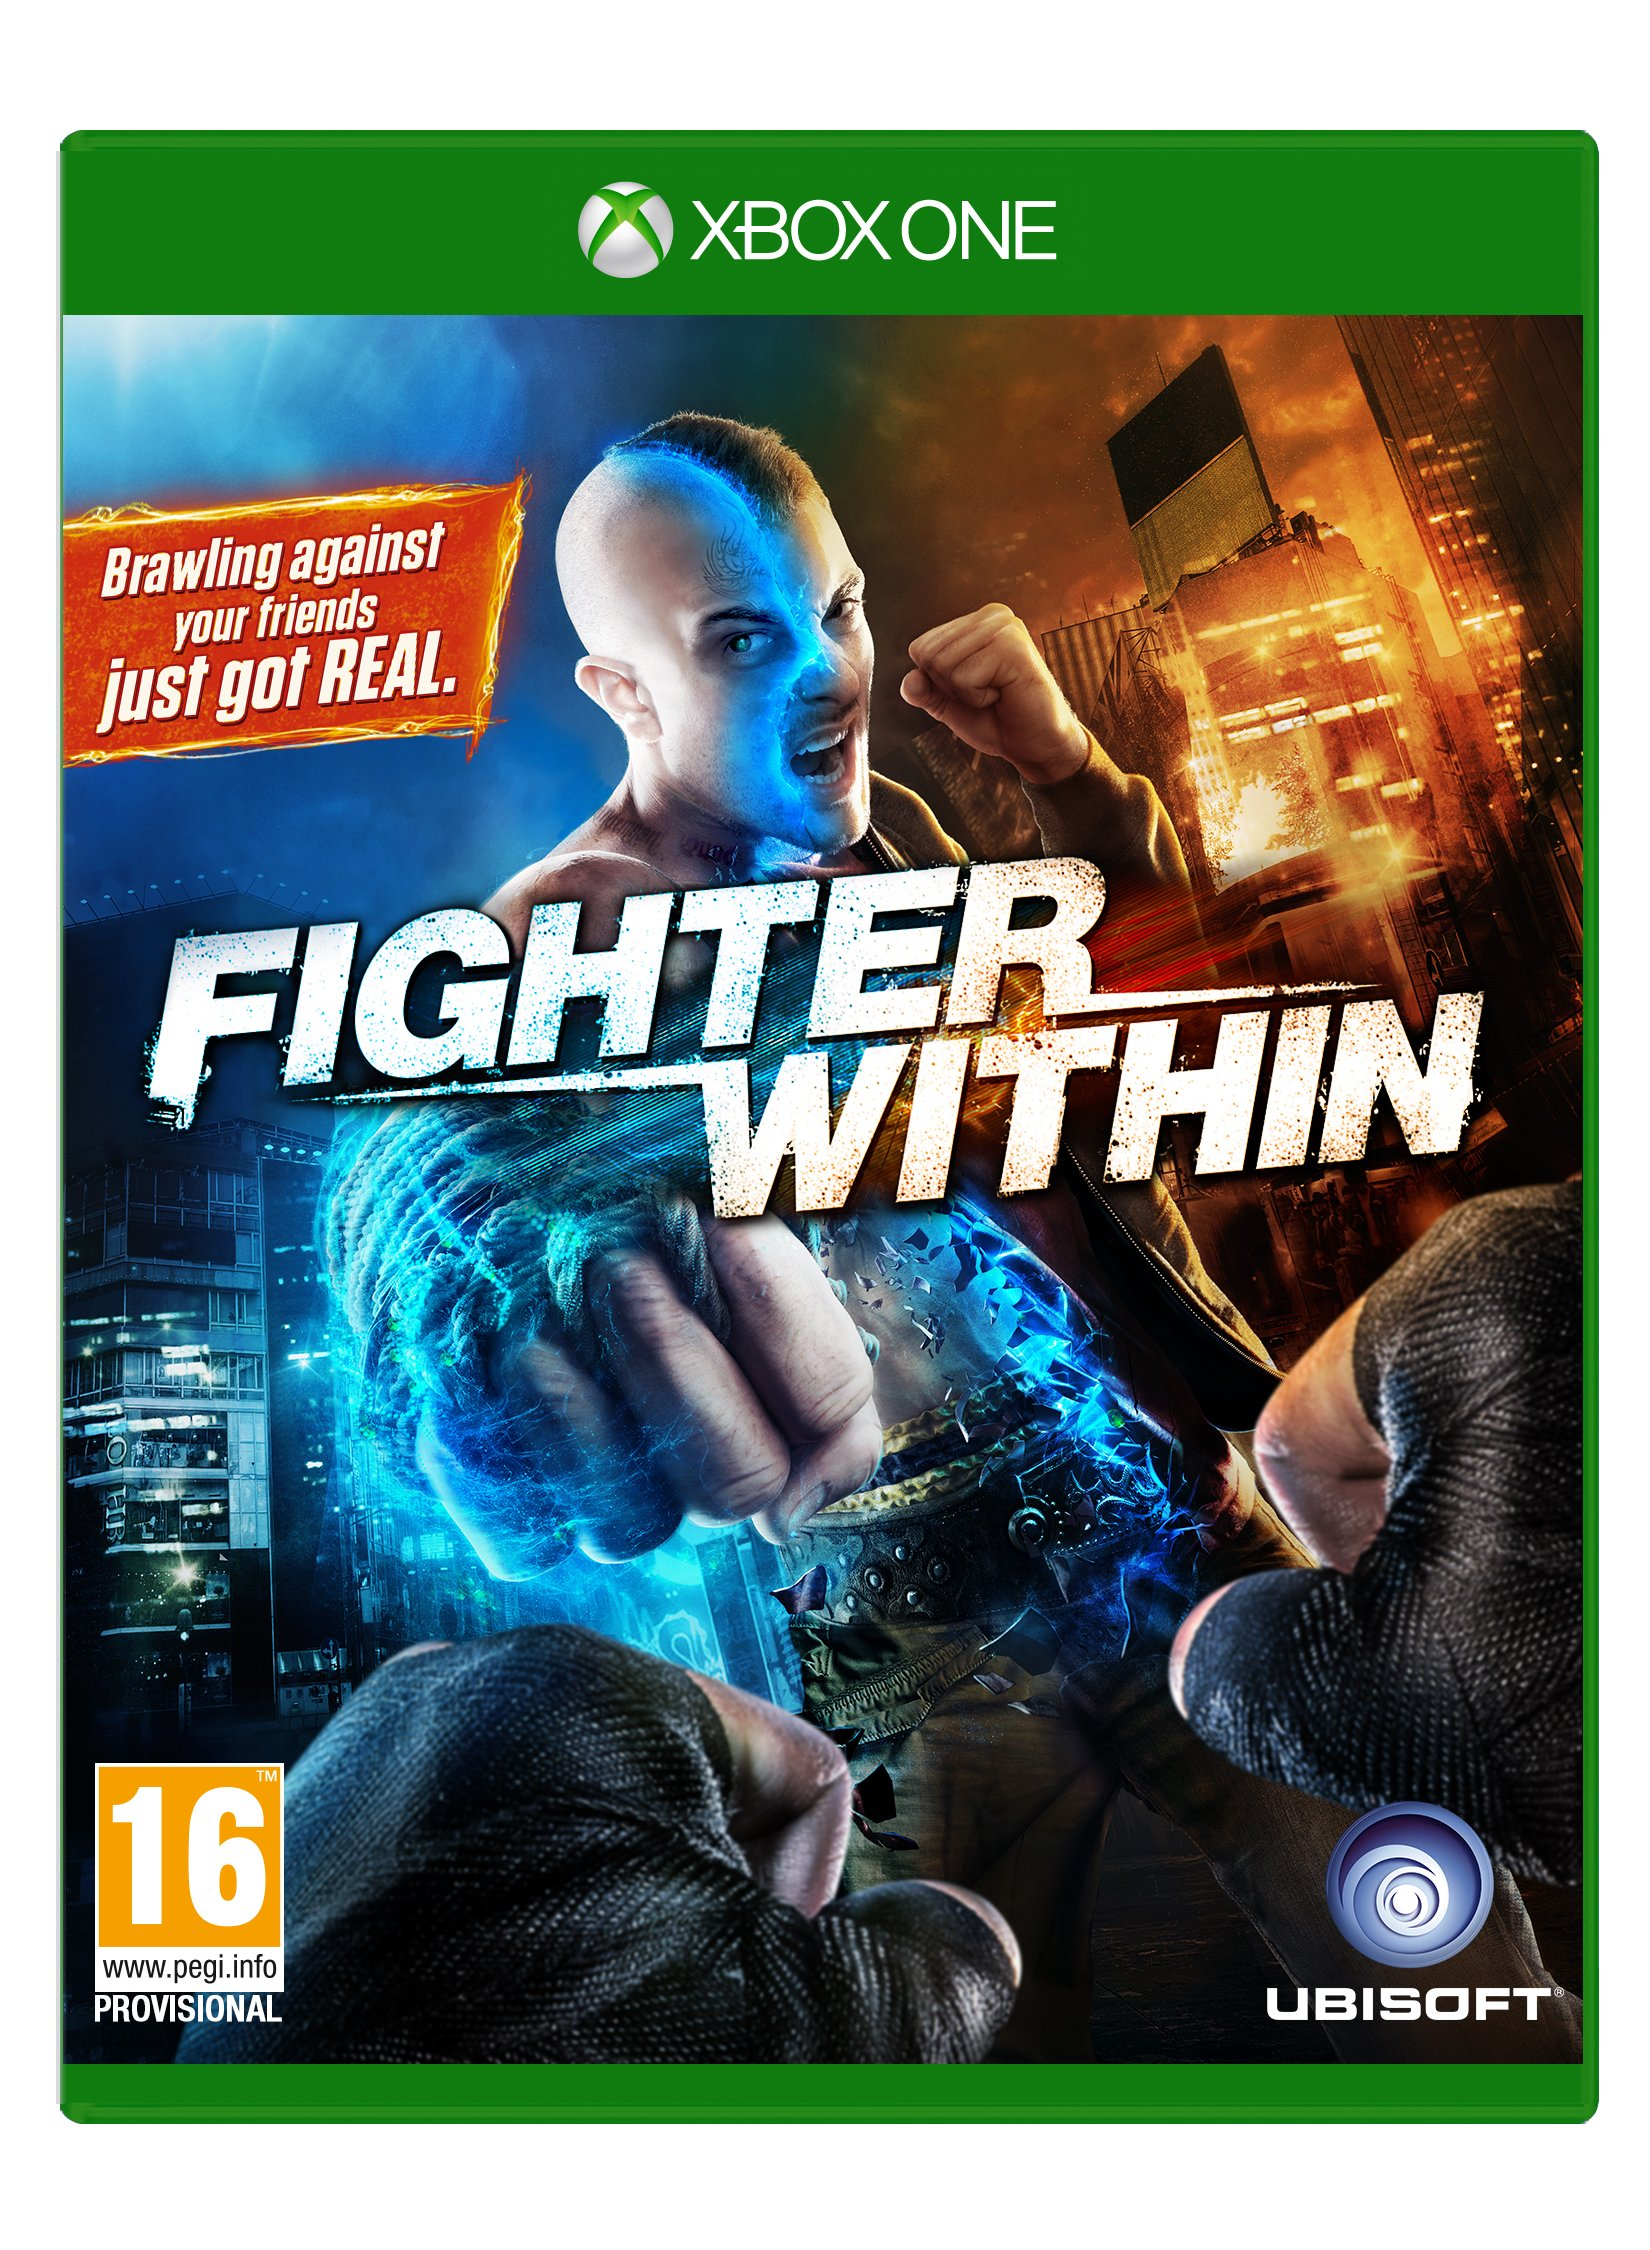 Ubisoft Fighter Within, Xbox One Básico Xbox One vídeo - Juego (Xbox One, Xbox One, Lucha, T (Teen)): Amazon.es: Videojuegos